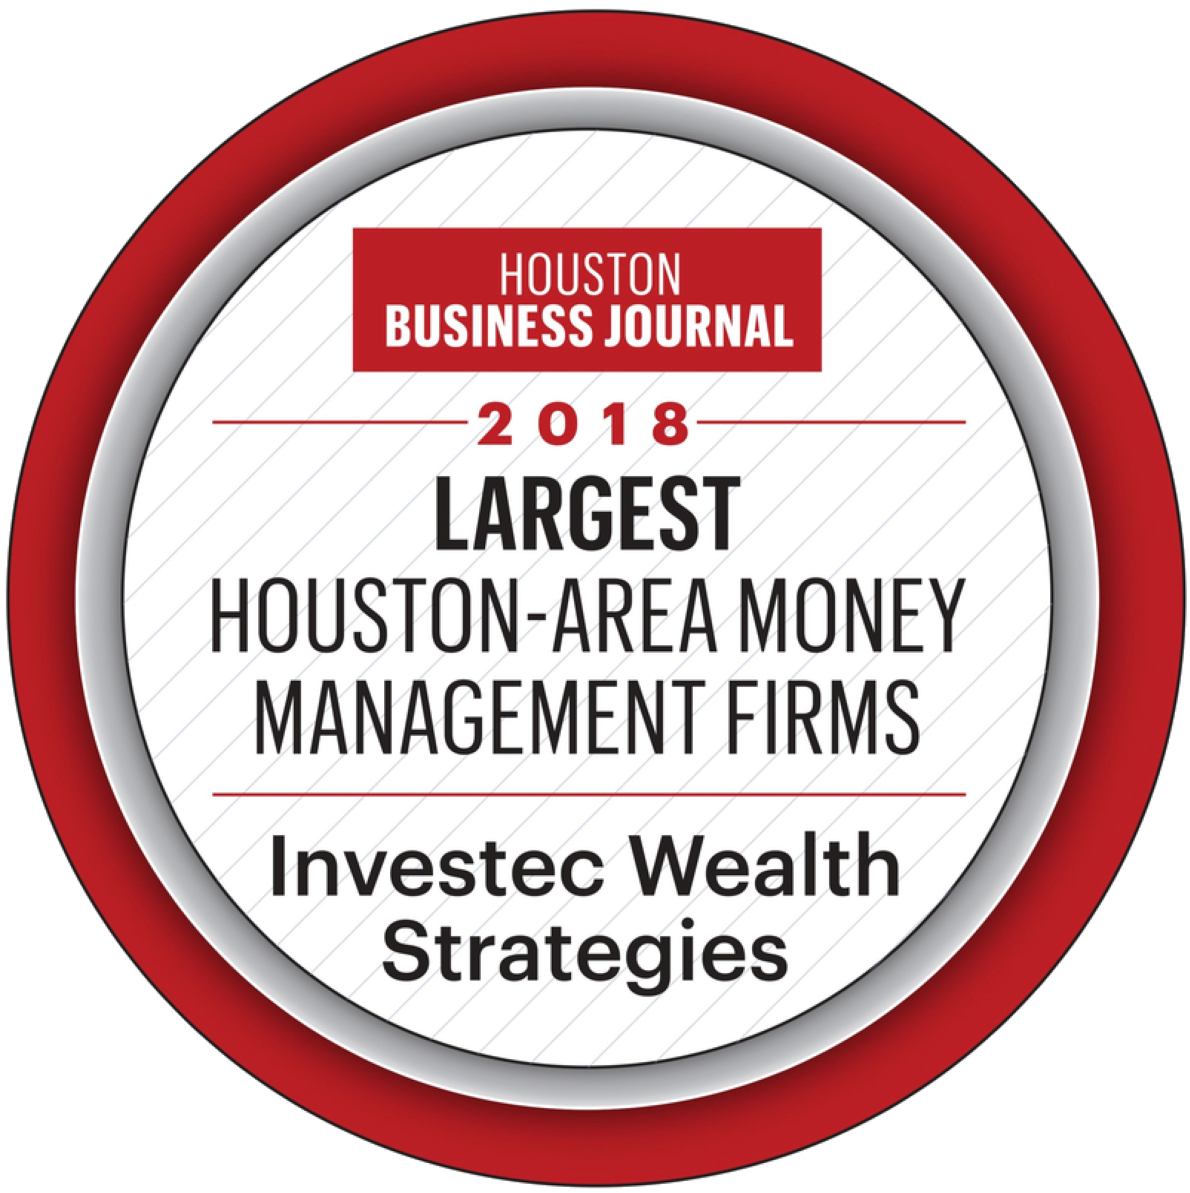 Investec - Houston Business Journal Largest Houston-Area Money Management Firms, 2018